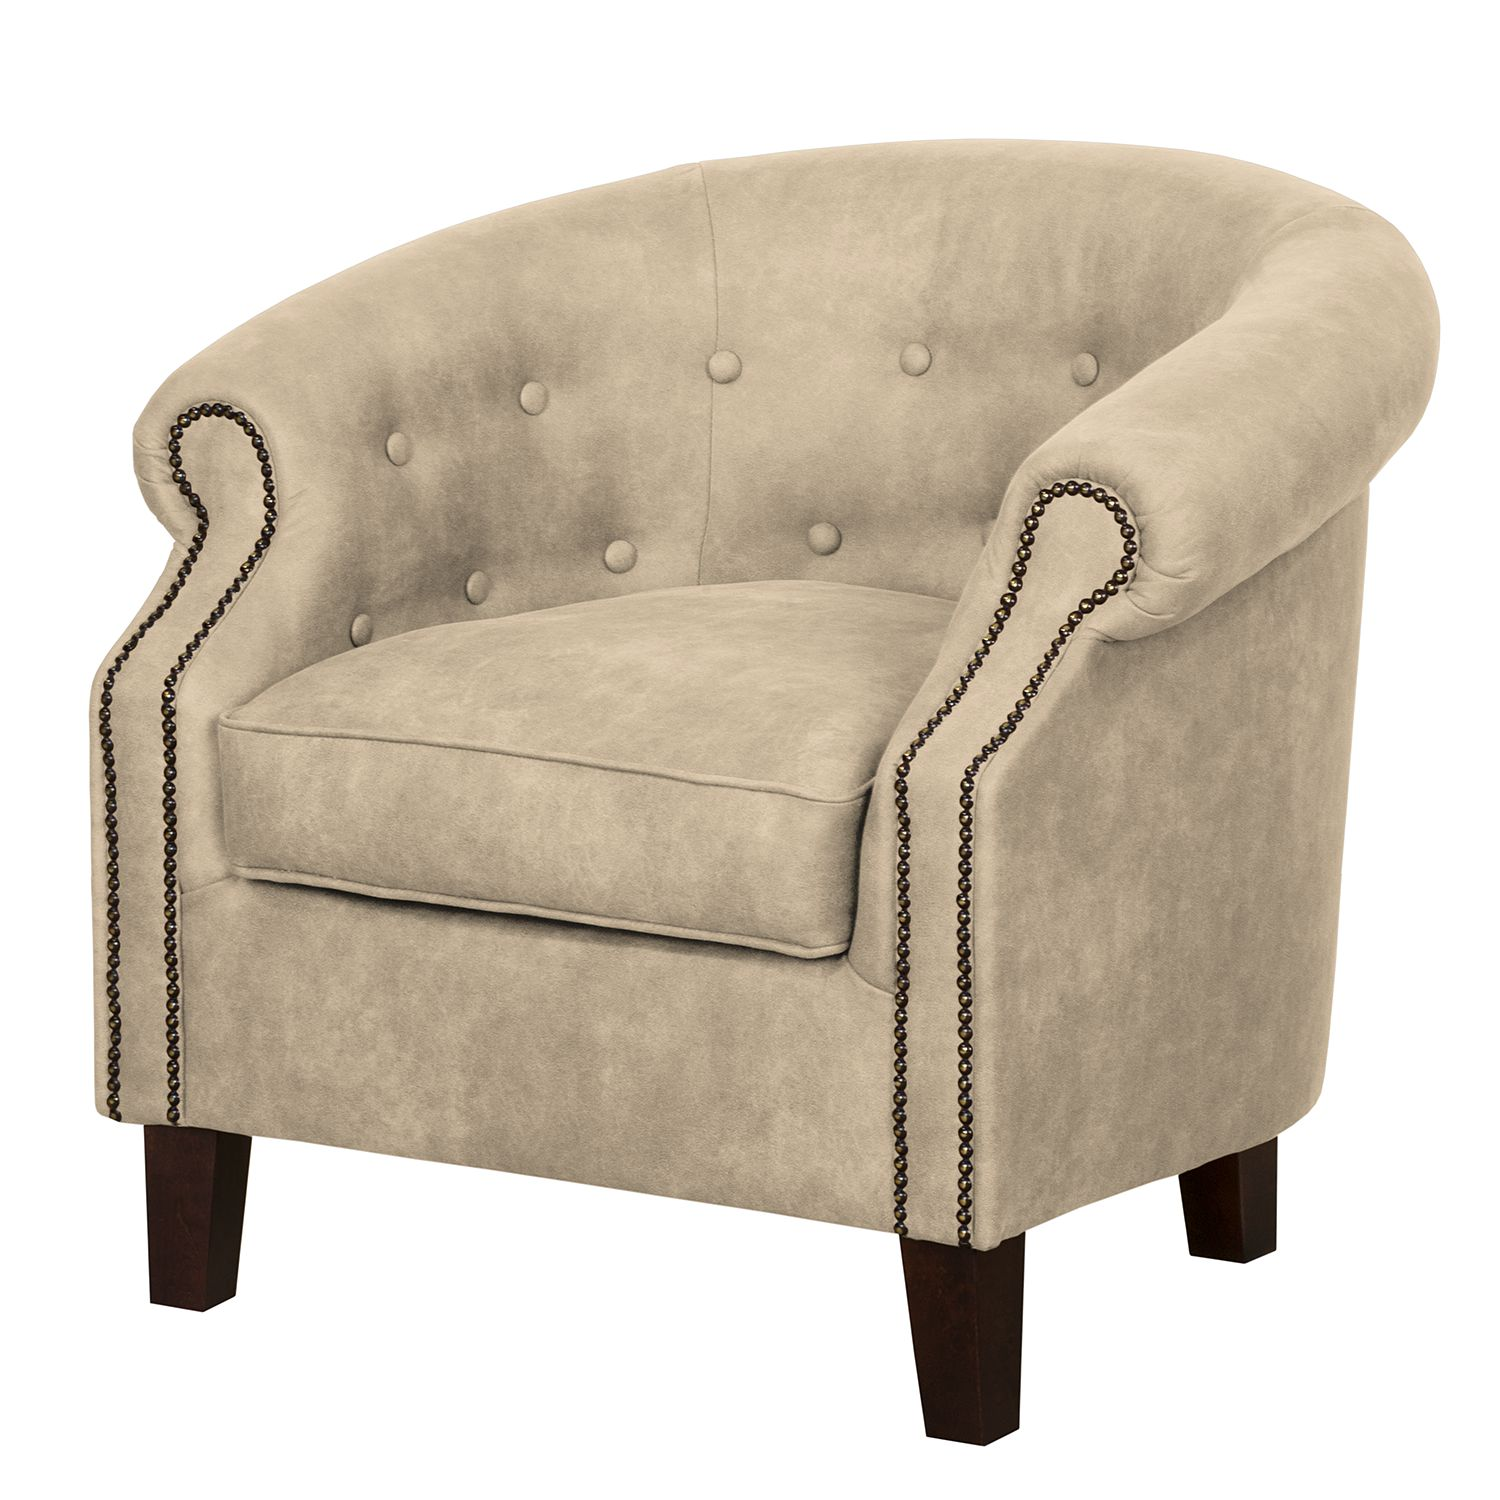 Fauteuil Great Hale III - Aspect cuir ancien - Beige chaud, Jack and Alice